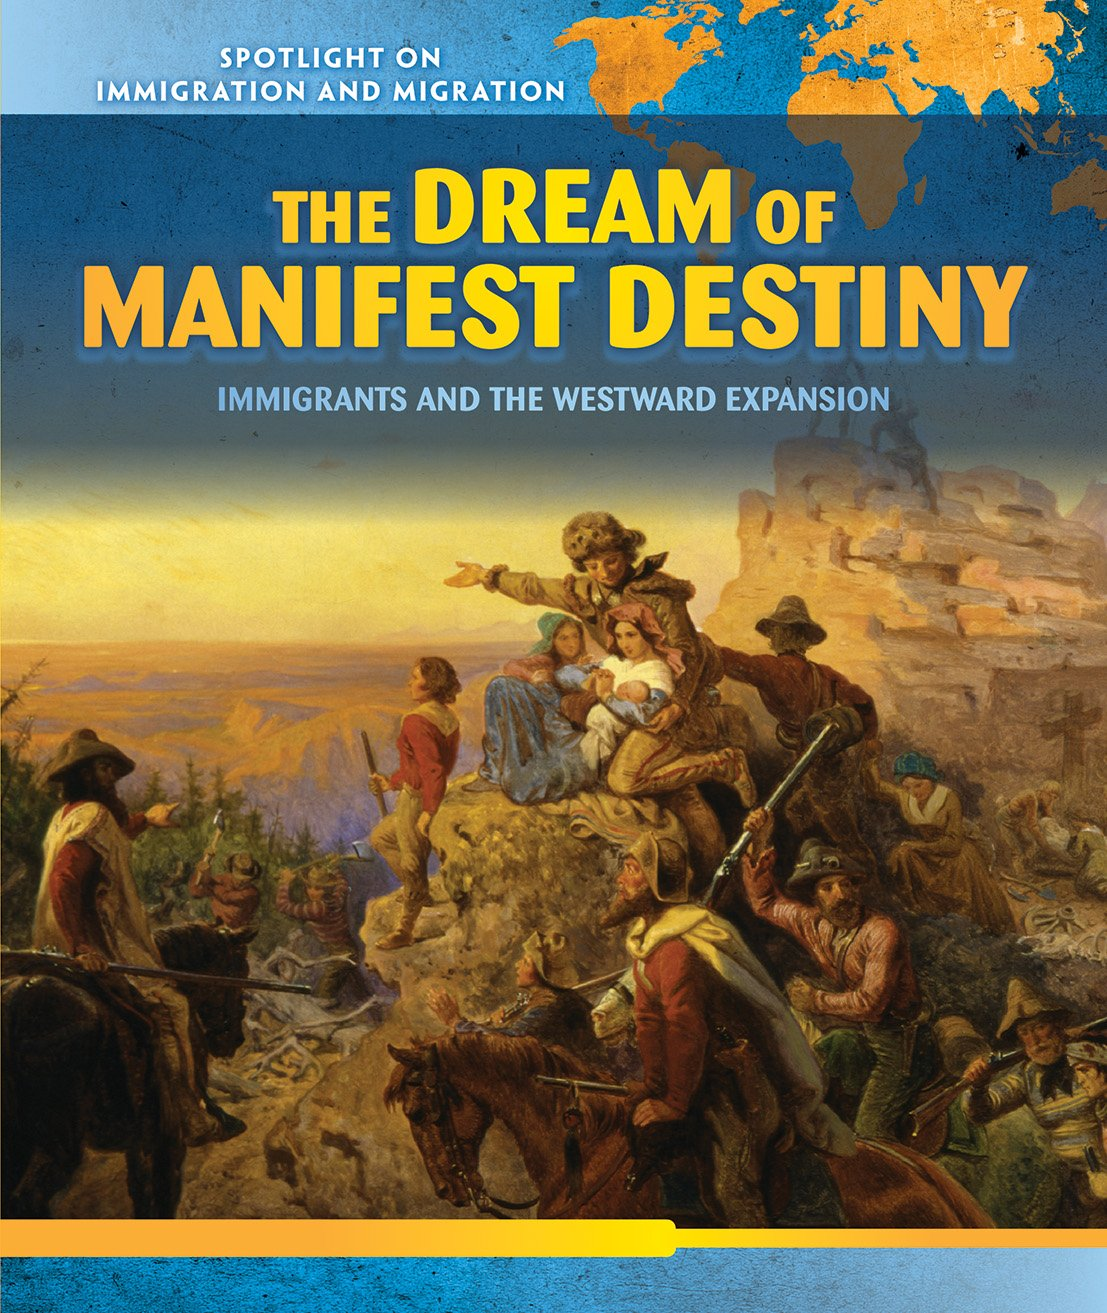 The Dream of Manifest Destiny: Immigrants and the Westward Expansion (Spotlight on Immigration and Migration)